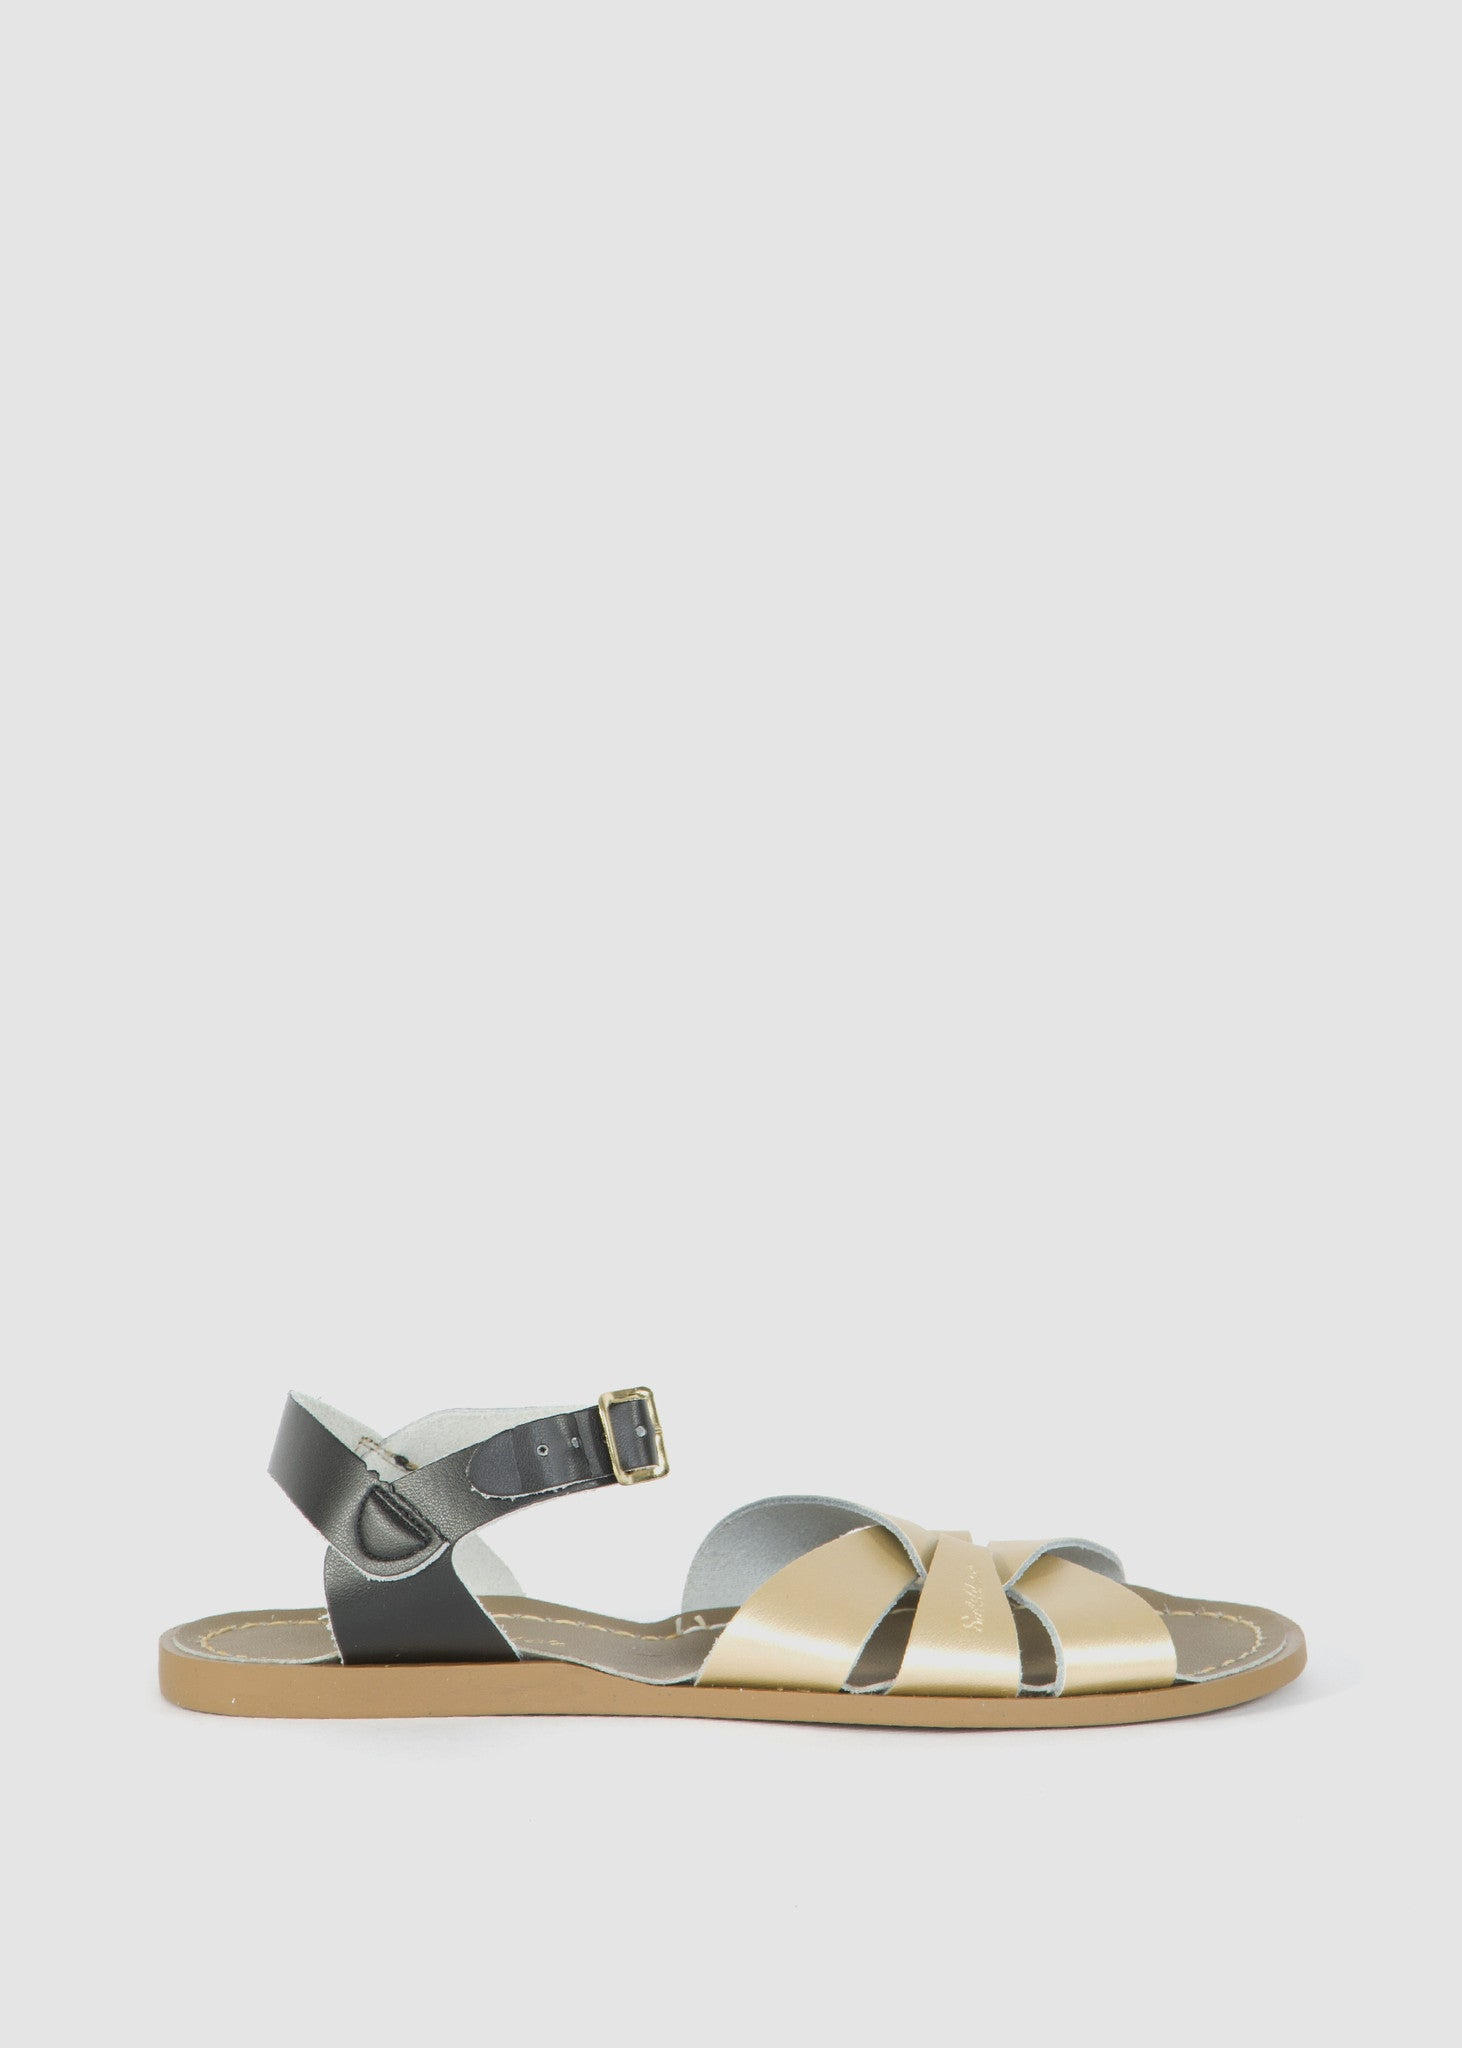 Sandal Gold/Black Mix